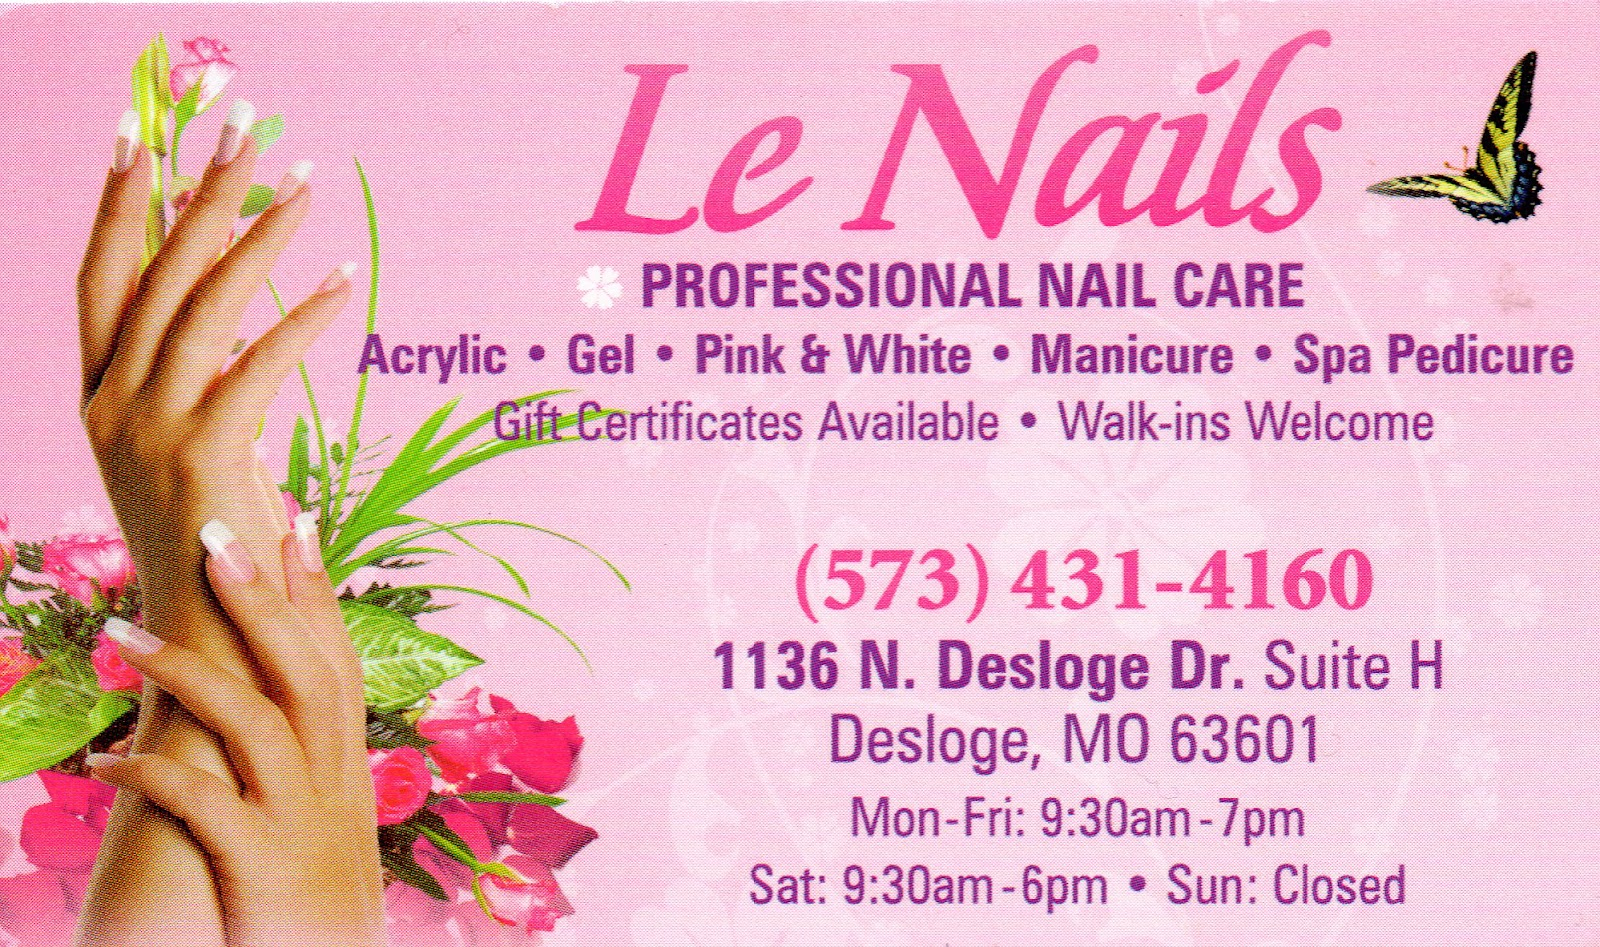 Nails salon business card oxynux le nails business card nail salon review le nails desloge mo colourmoves